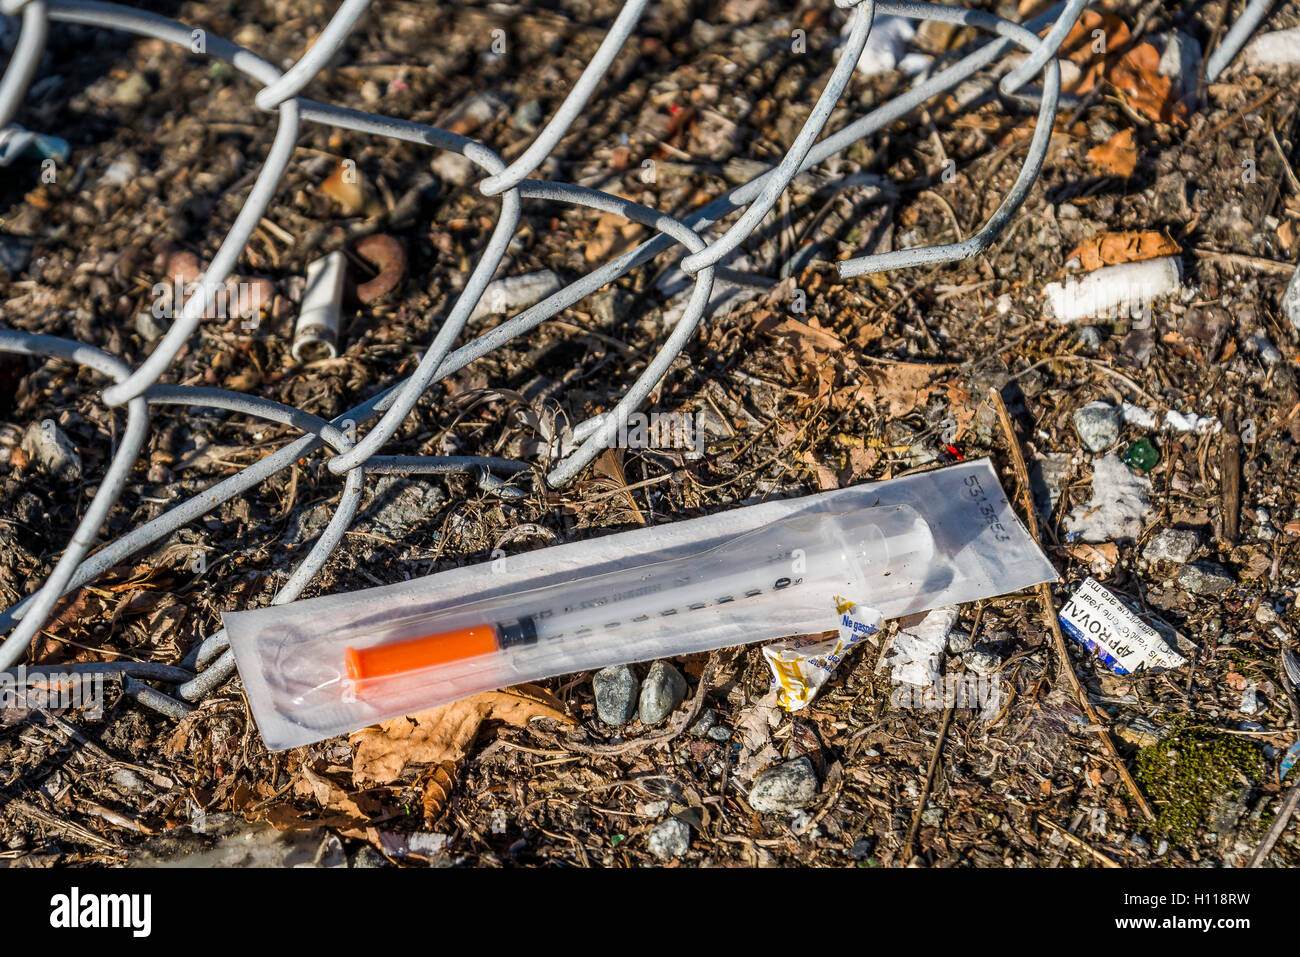 Discarded hypodermic needle, Vancouver, British Columbia, Canada, - Stock Image